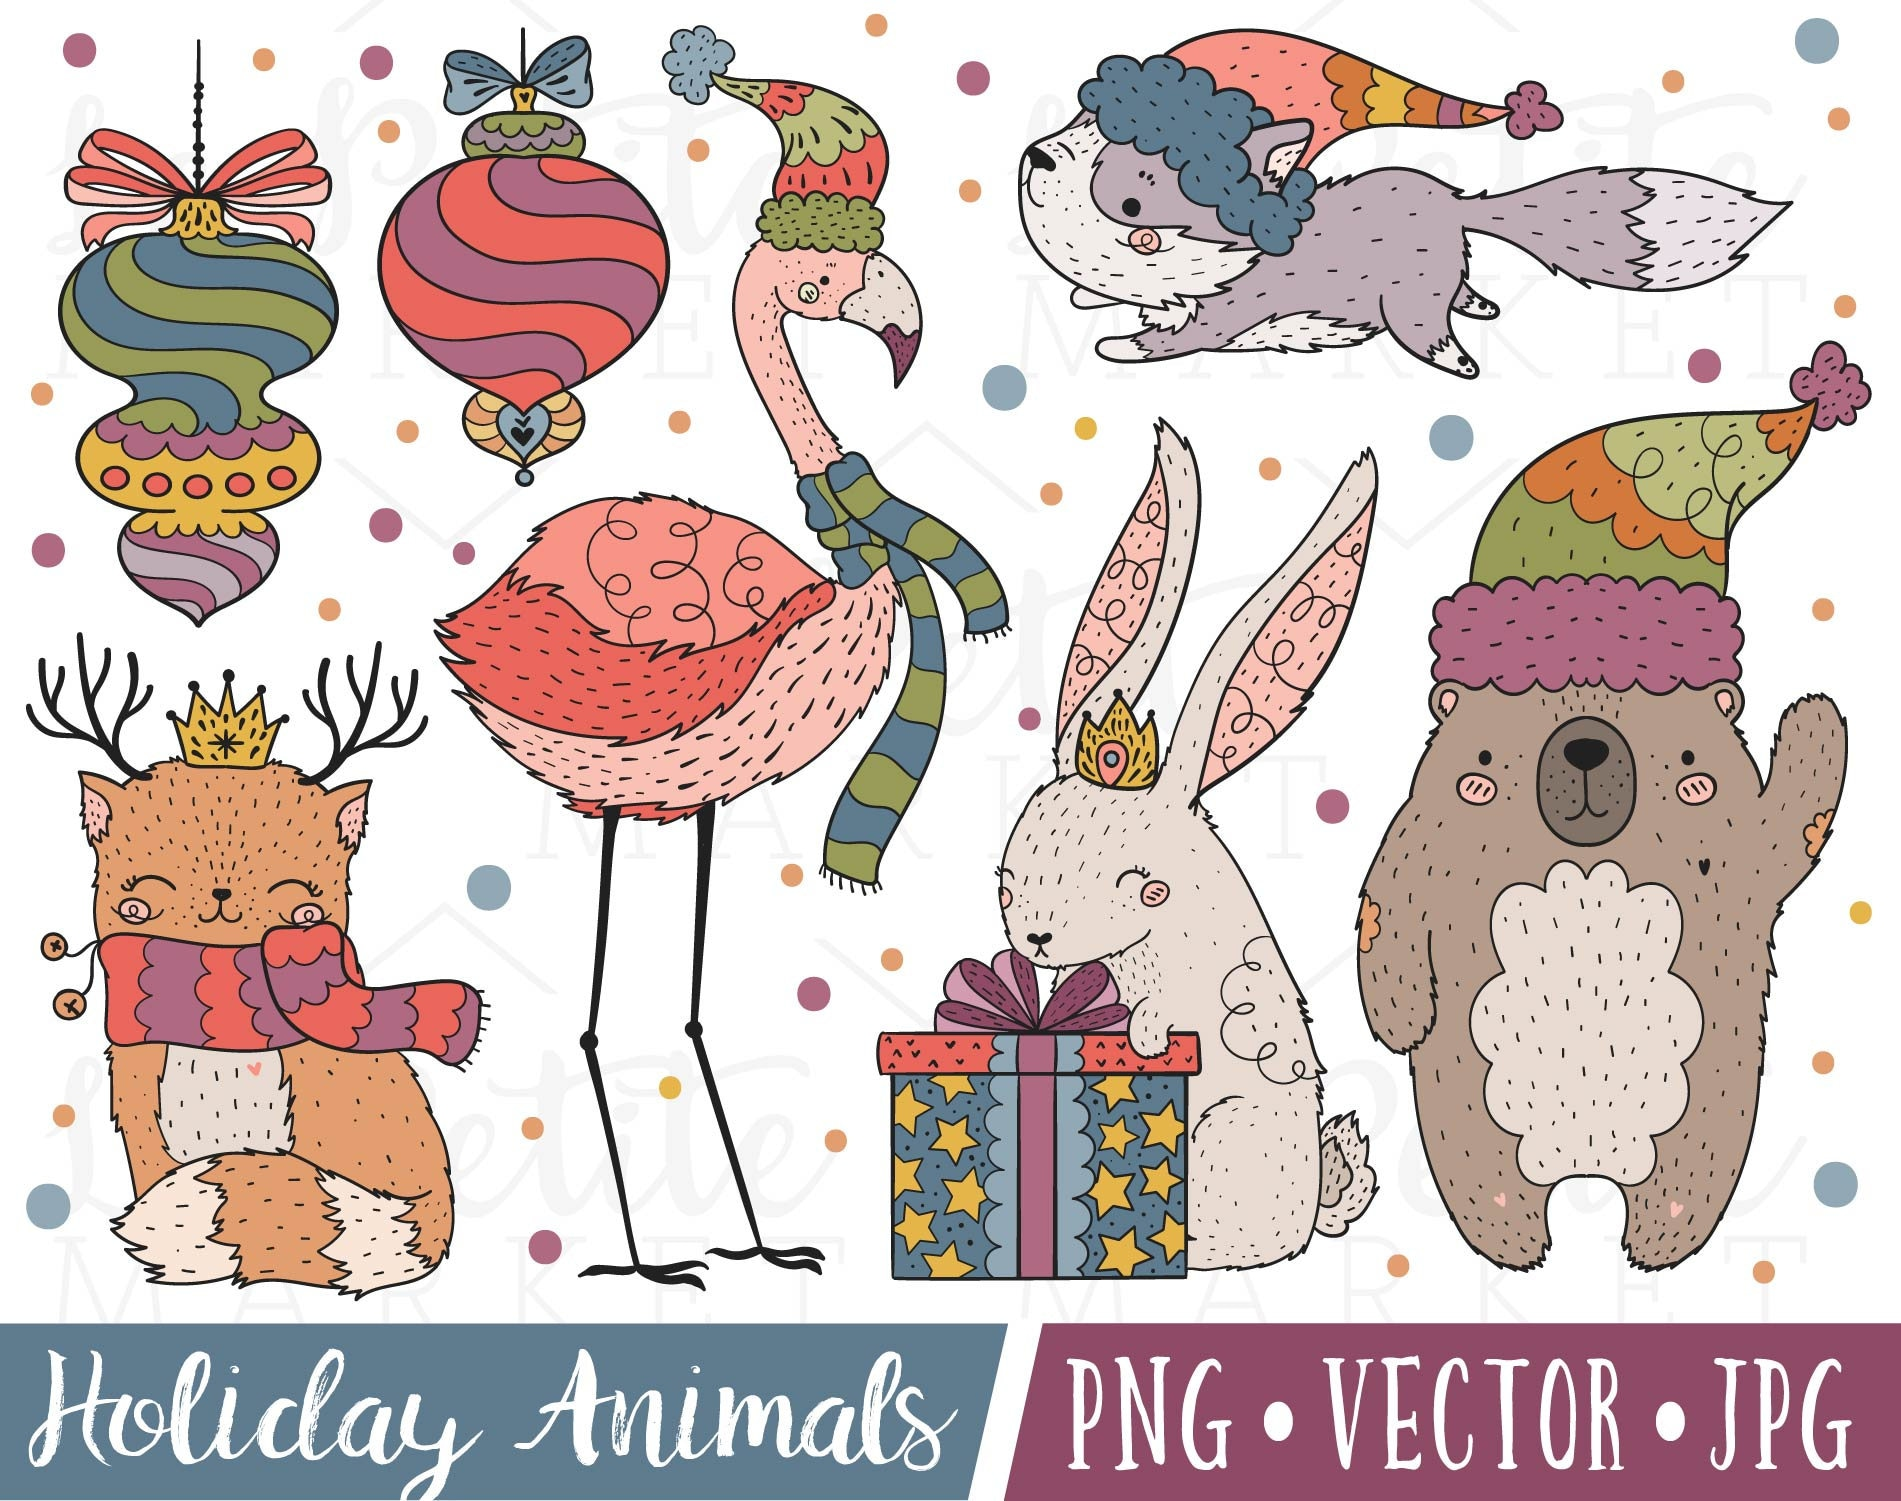 Christmas Animals Clipart Images Christmas Ornaments Clipart | Etsy